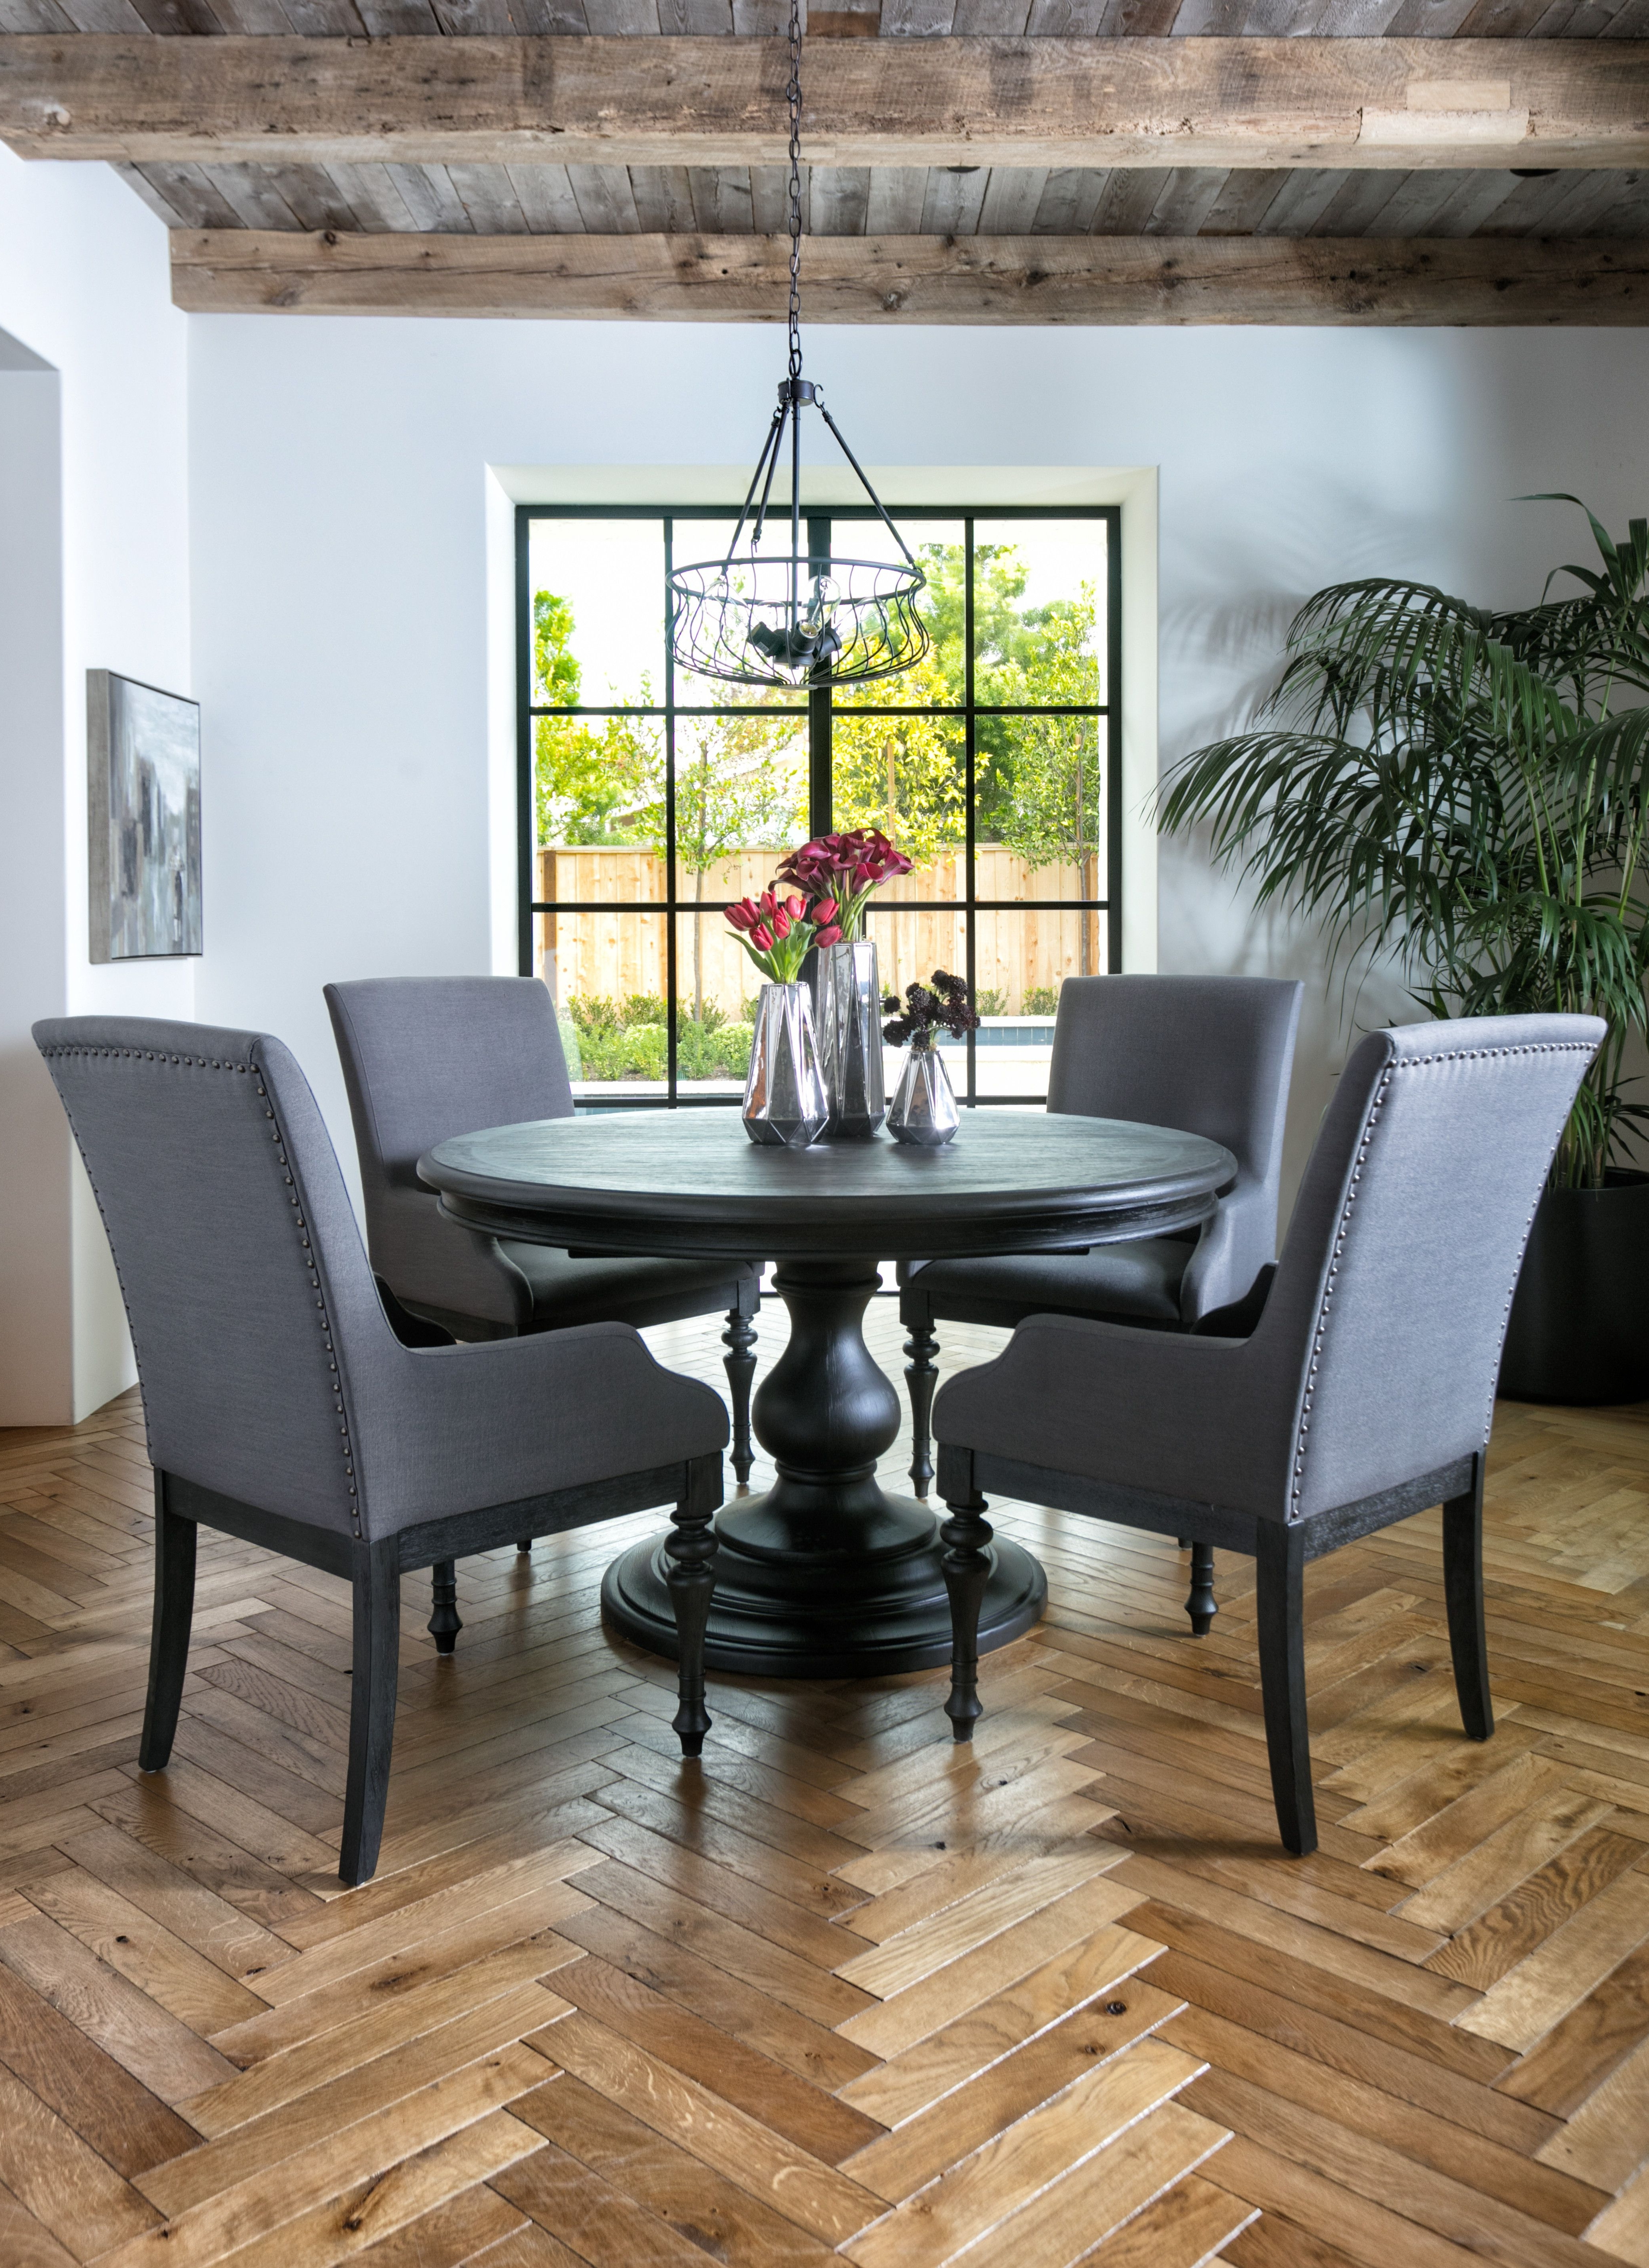 Most Popular Caira Black 5 Piece Round Dining Set With Diamond Back Side Chairs In Caira Black Round Dining Tables (View 2 of 25)